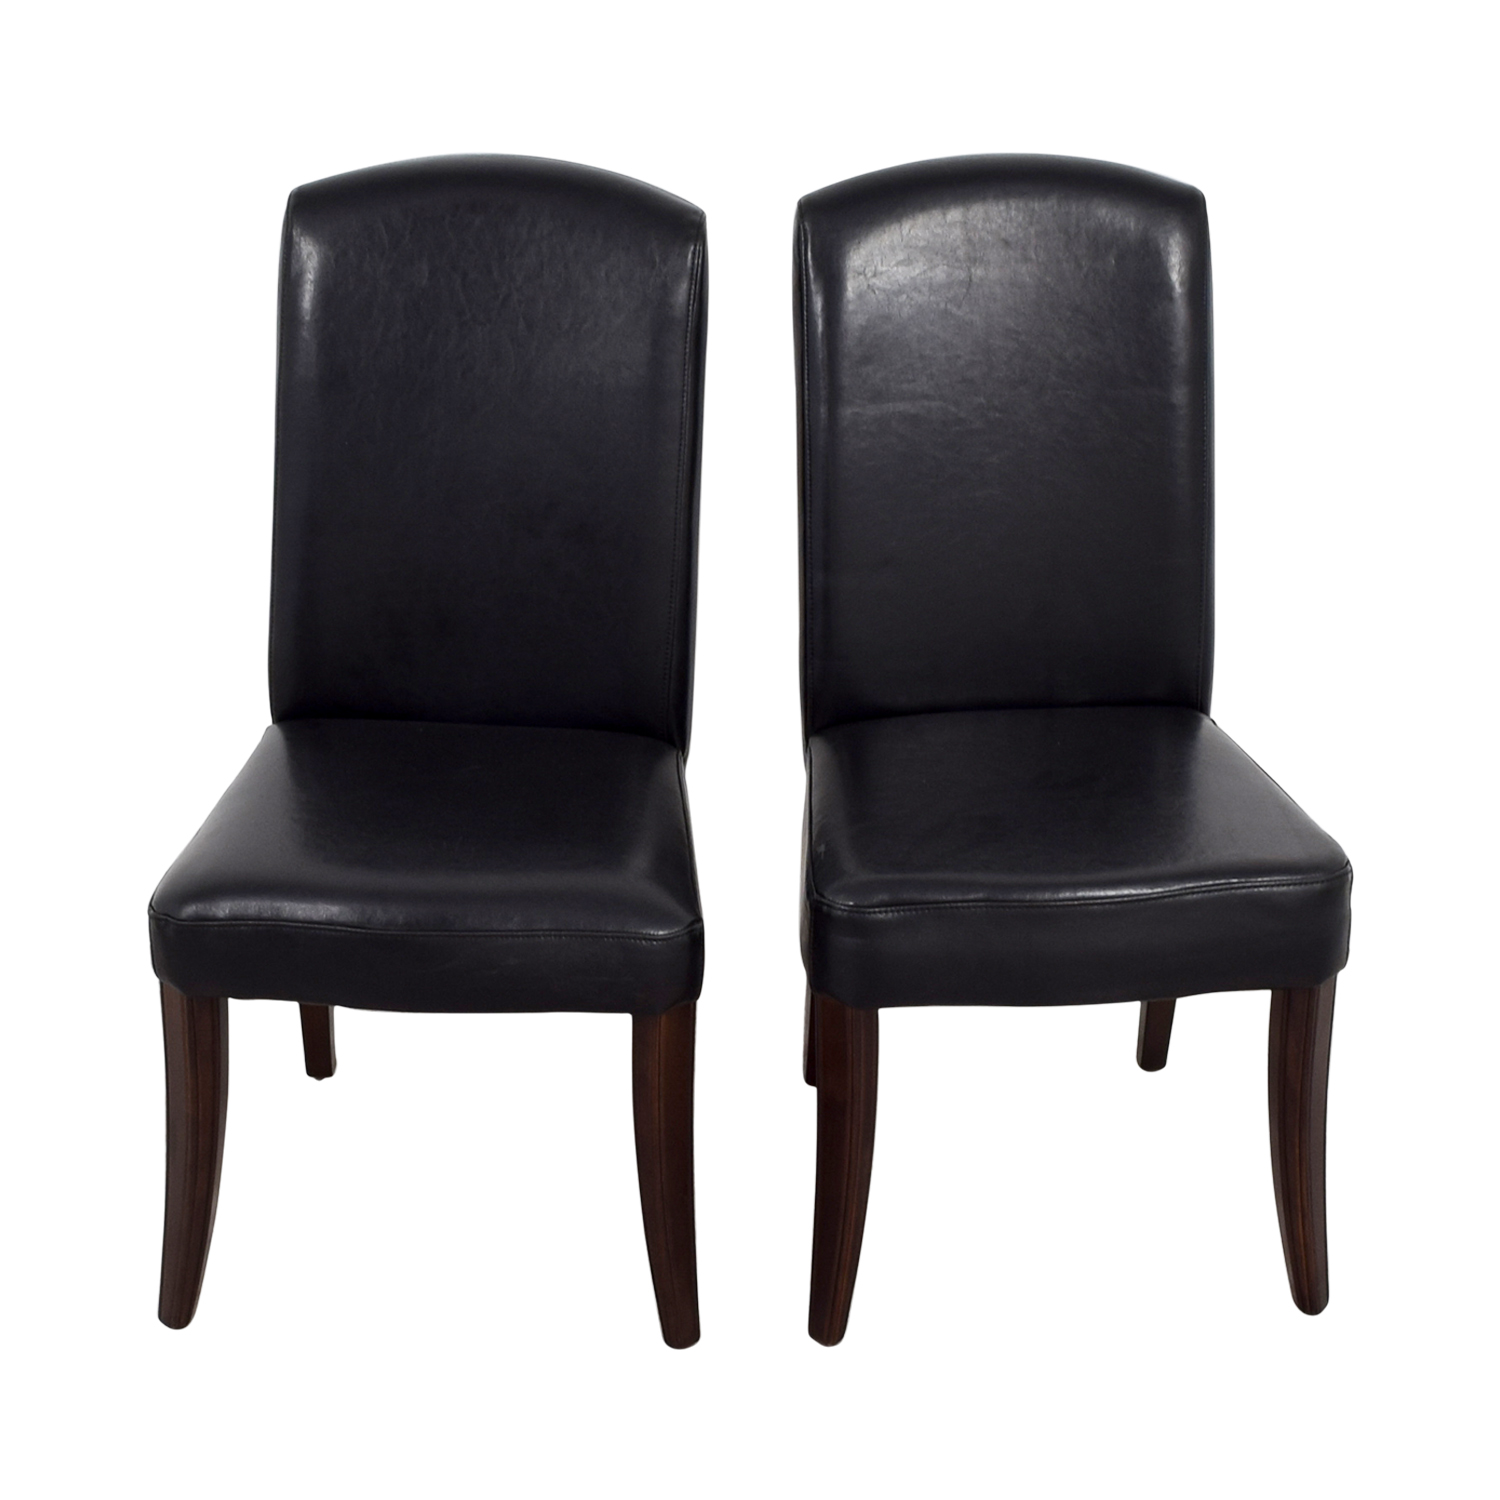 Black Padded Leatherette High Back Chairs Accent Chairs